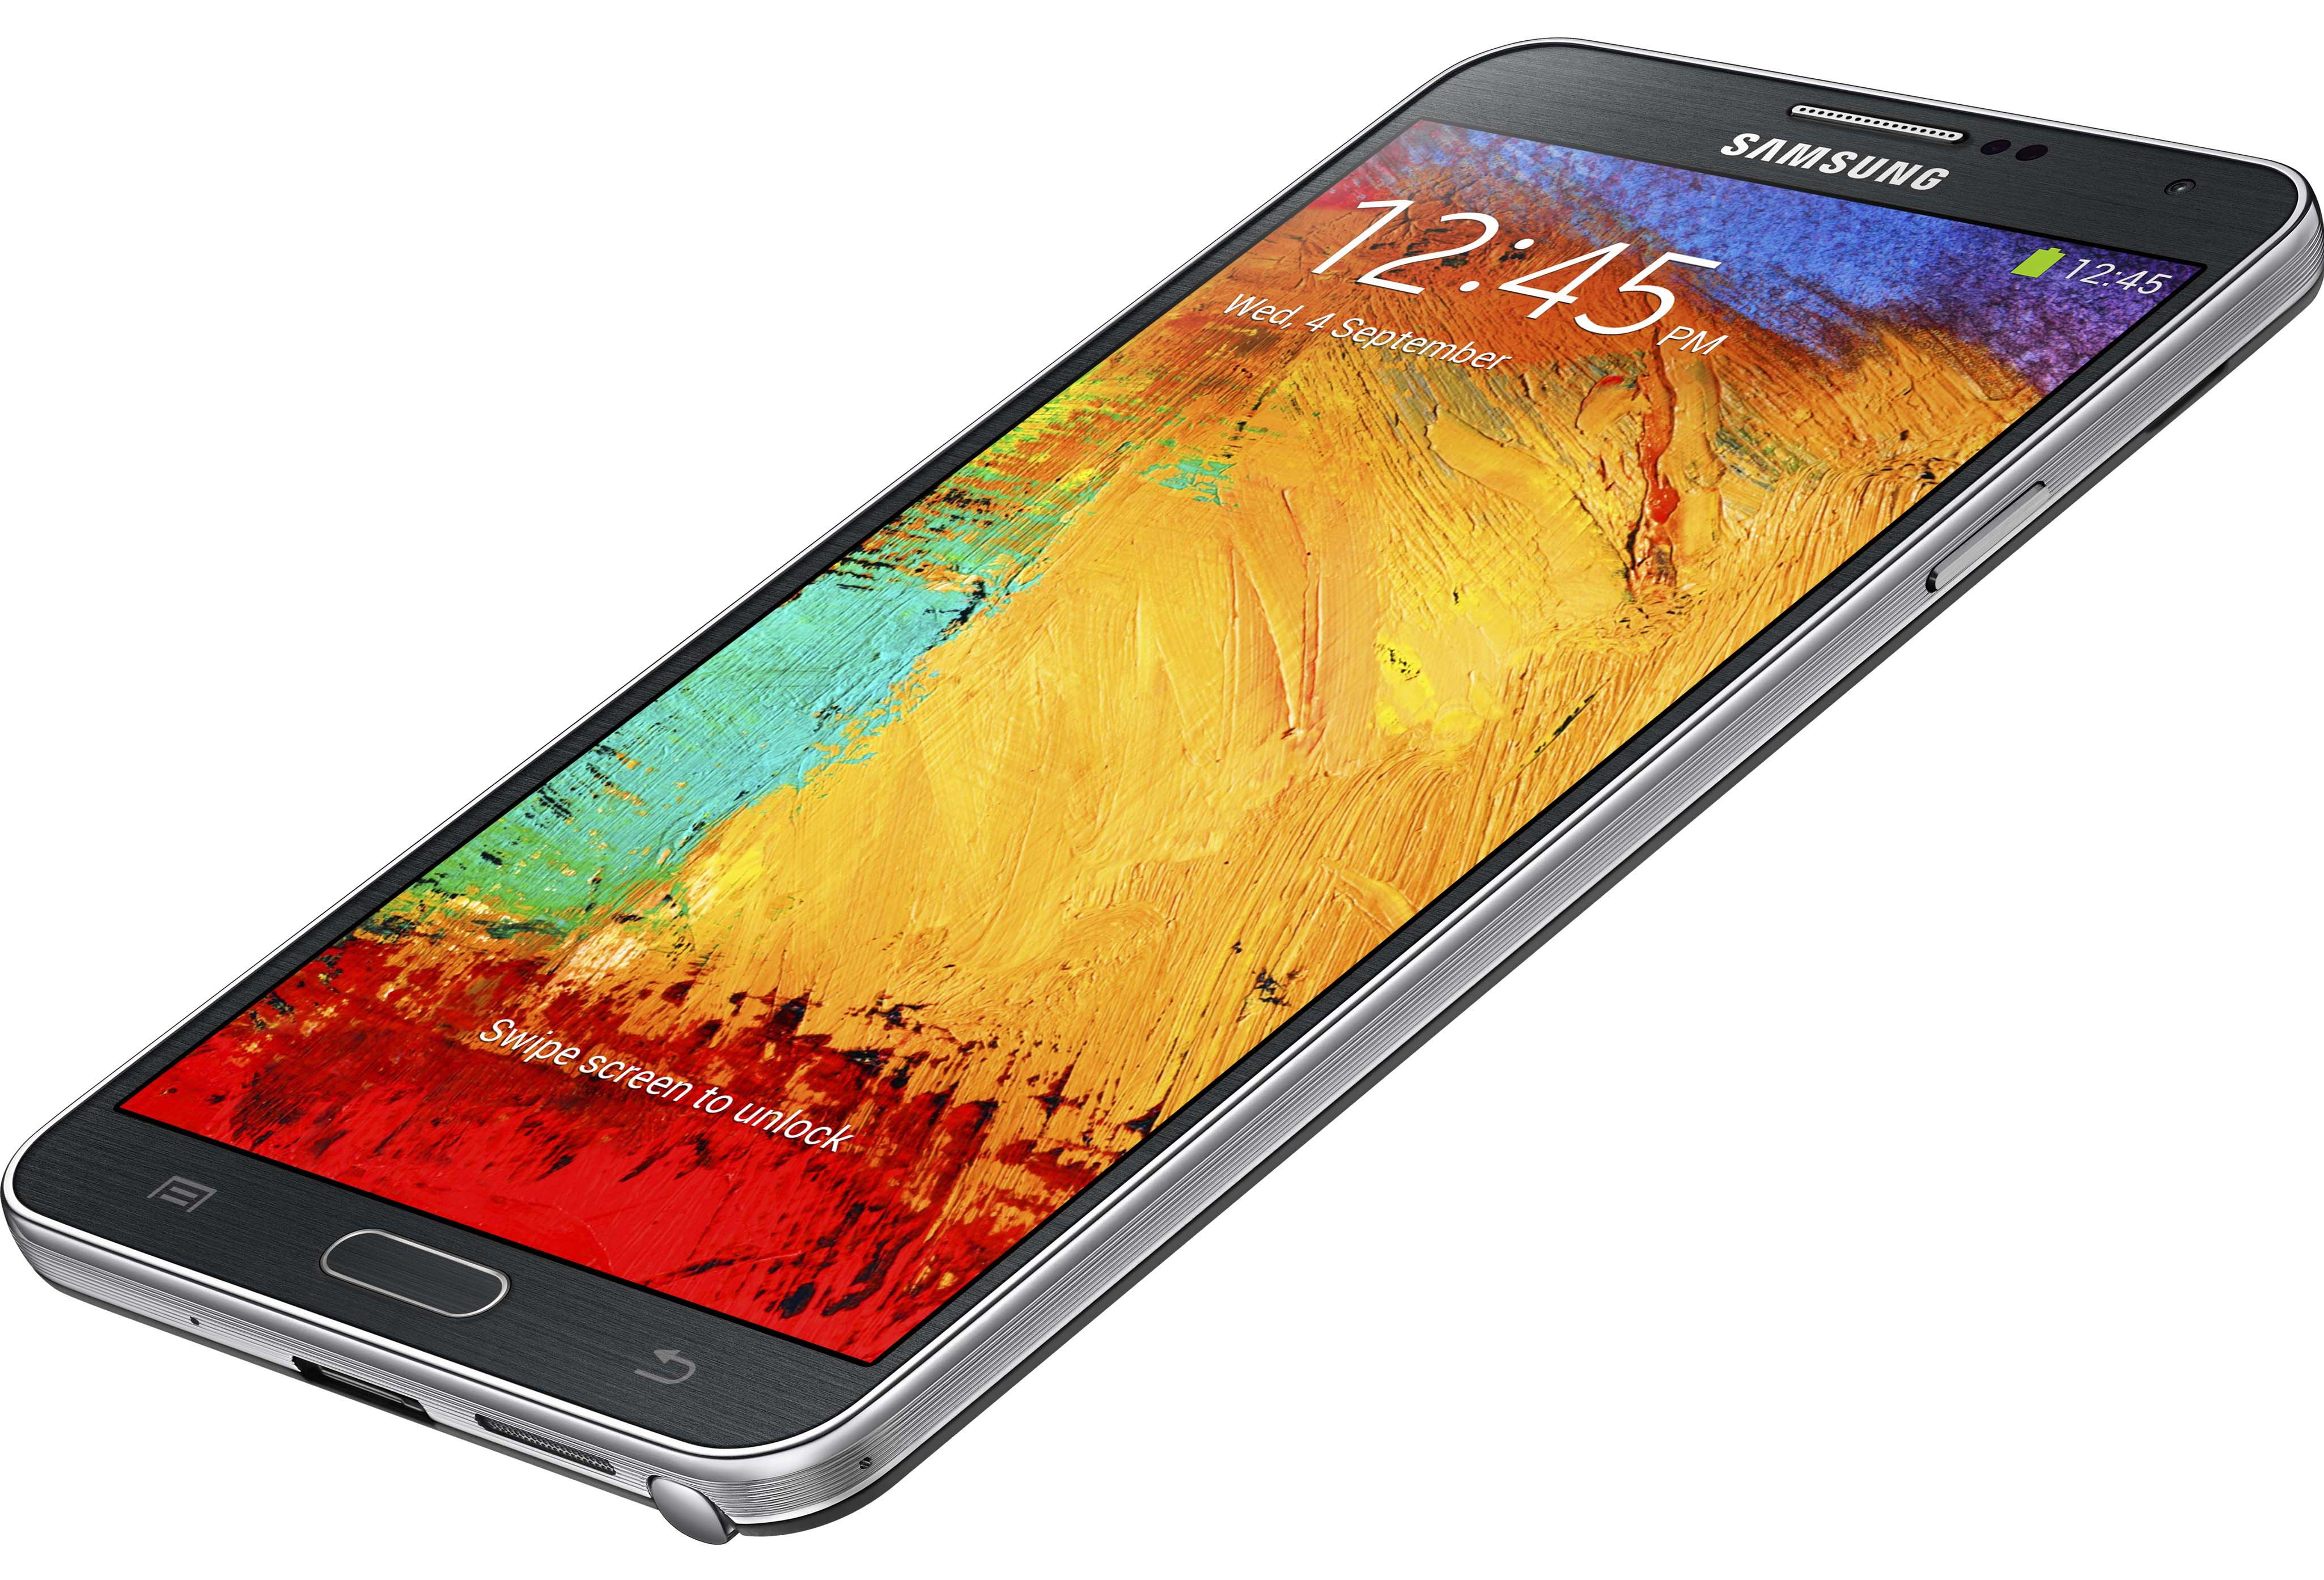 Top 5 Business Mobile Phones Of 2014